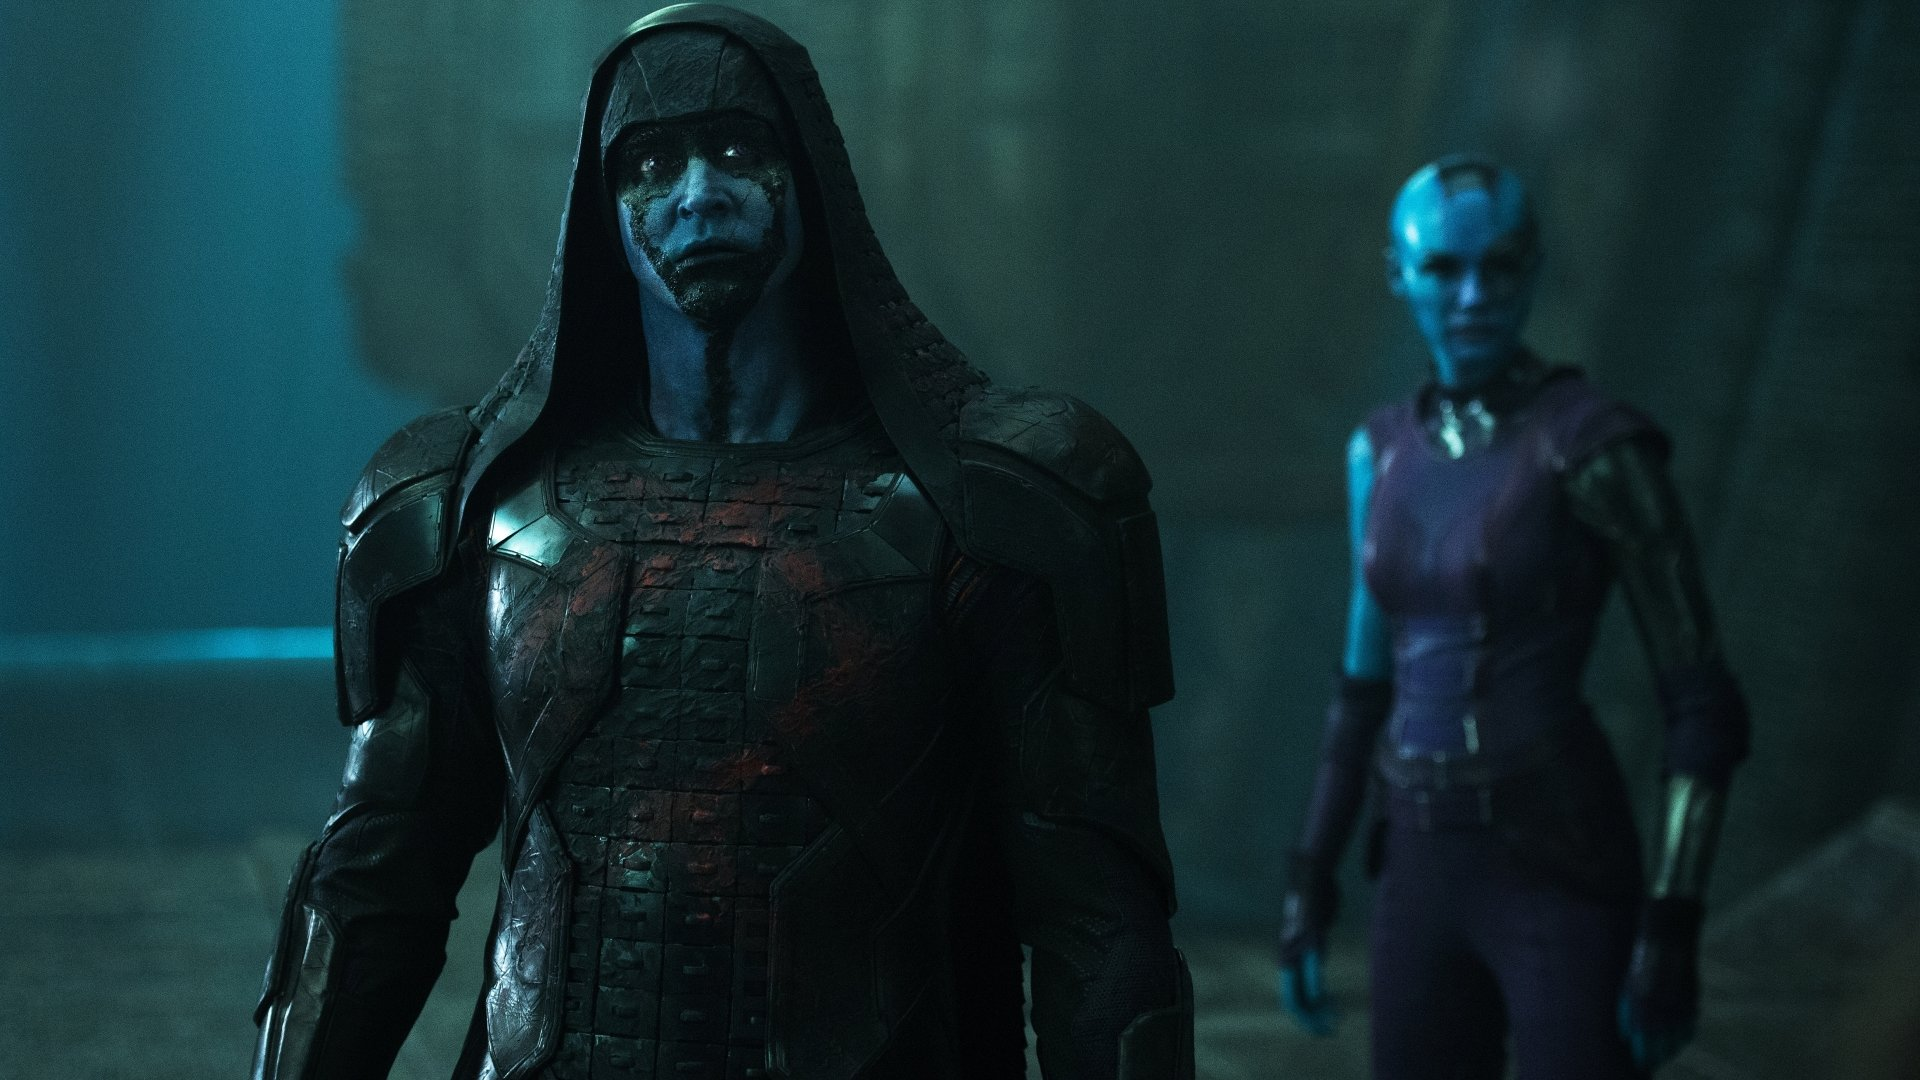 Movie - Guardians of the Galaxy  Lee Pace Karen Gillan Nebula (Guardians of the Galaxy) Ronan the Accuser Wallpaper